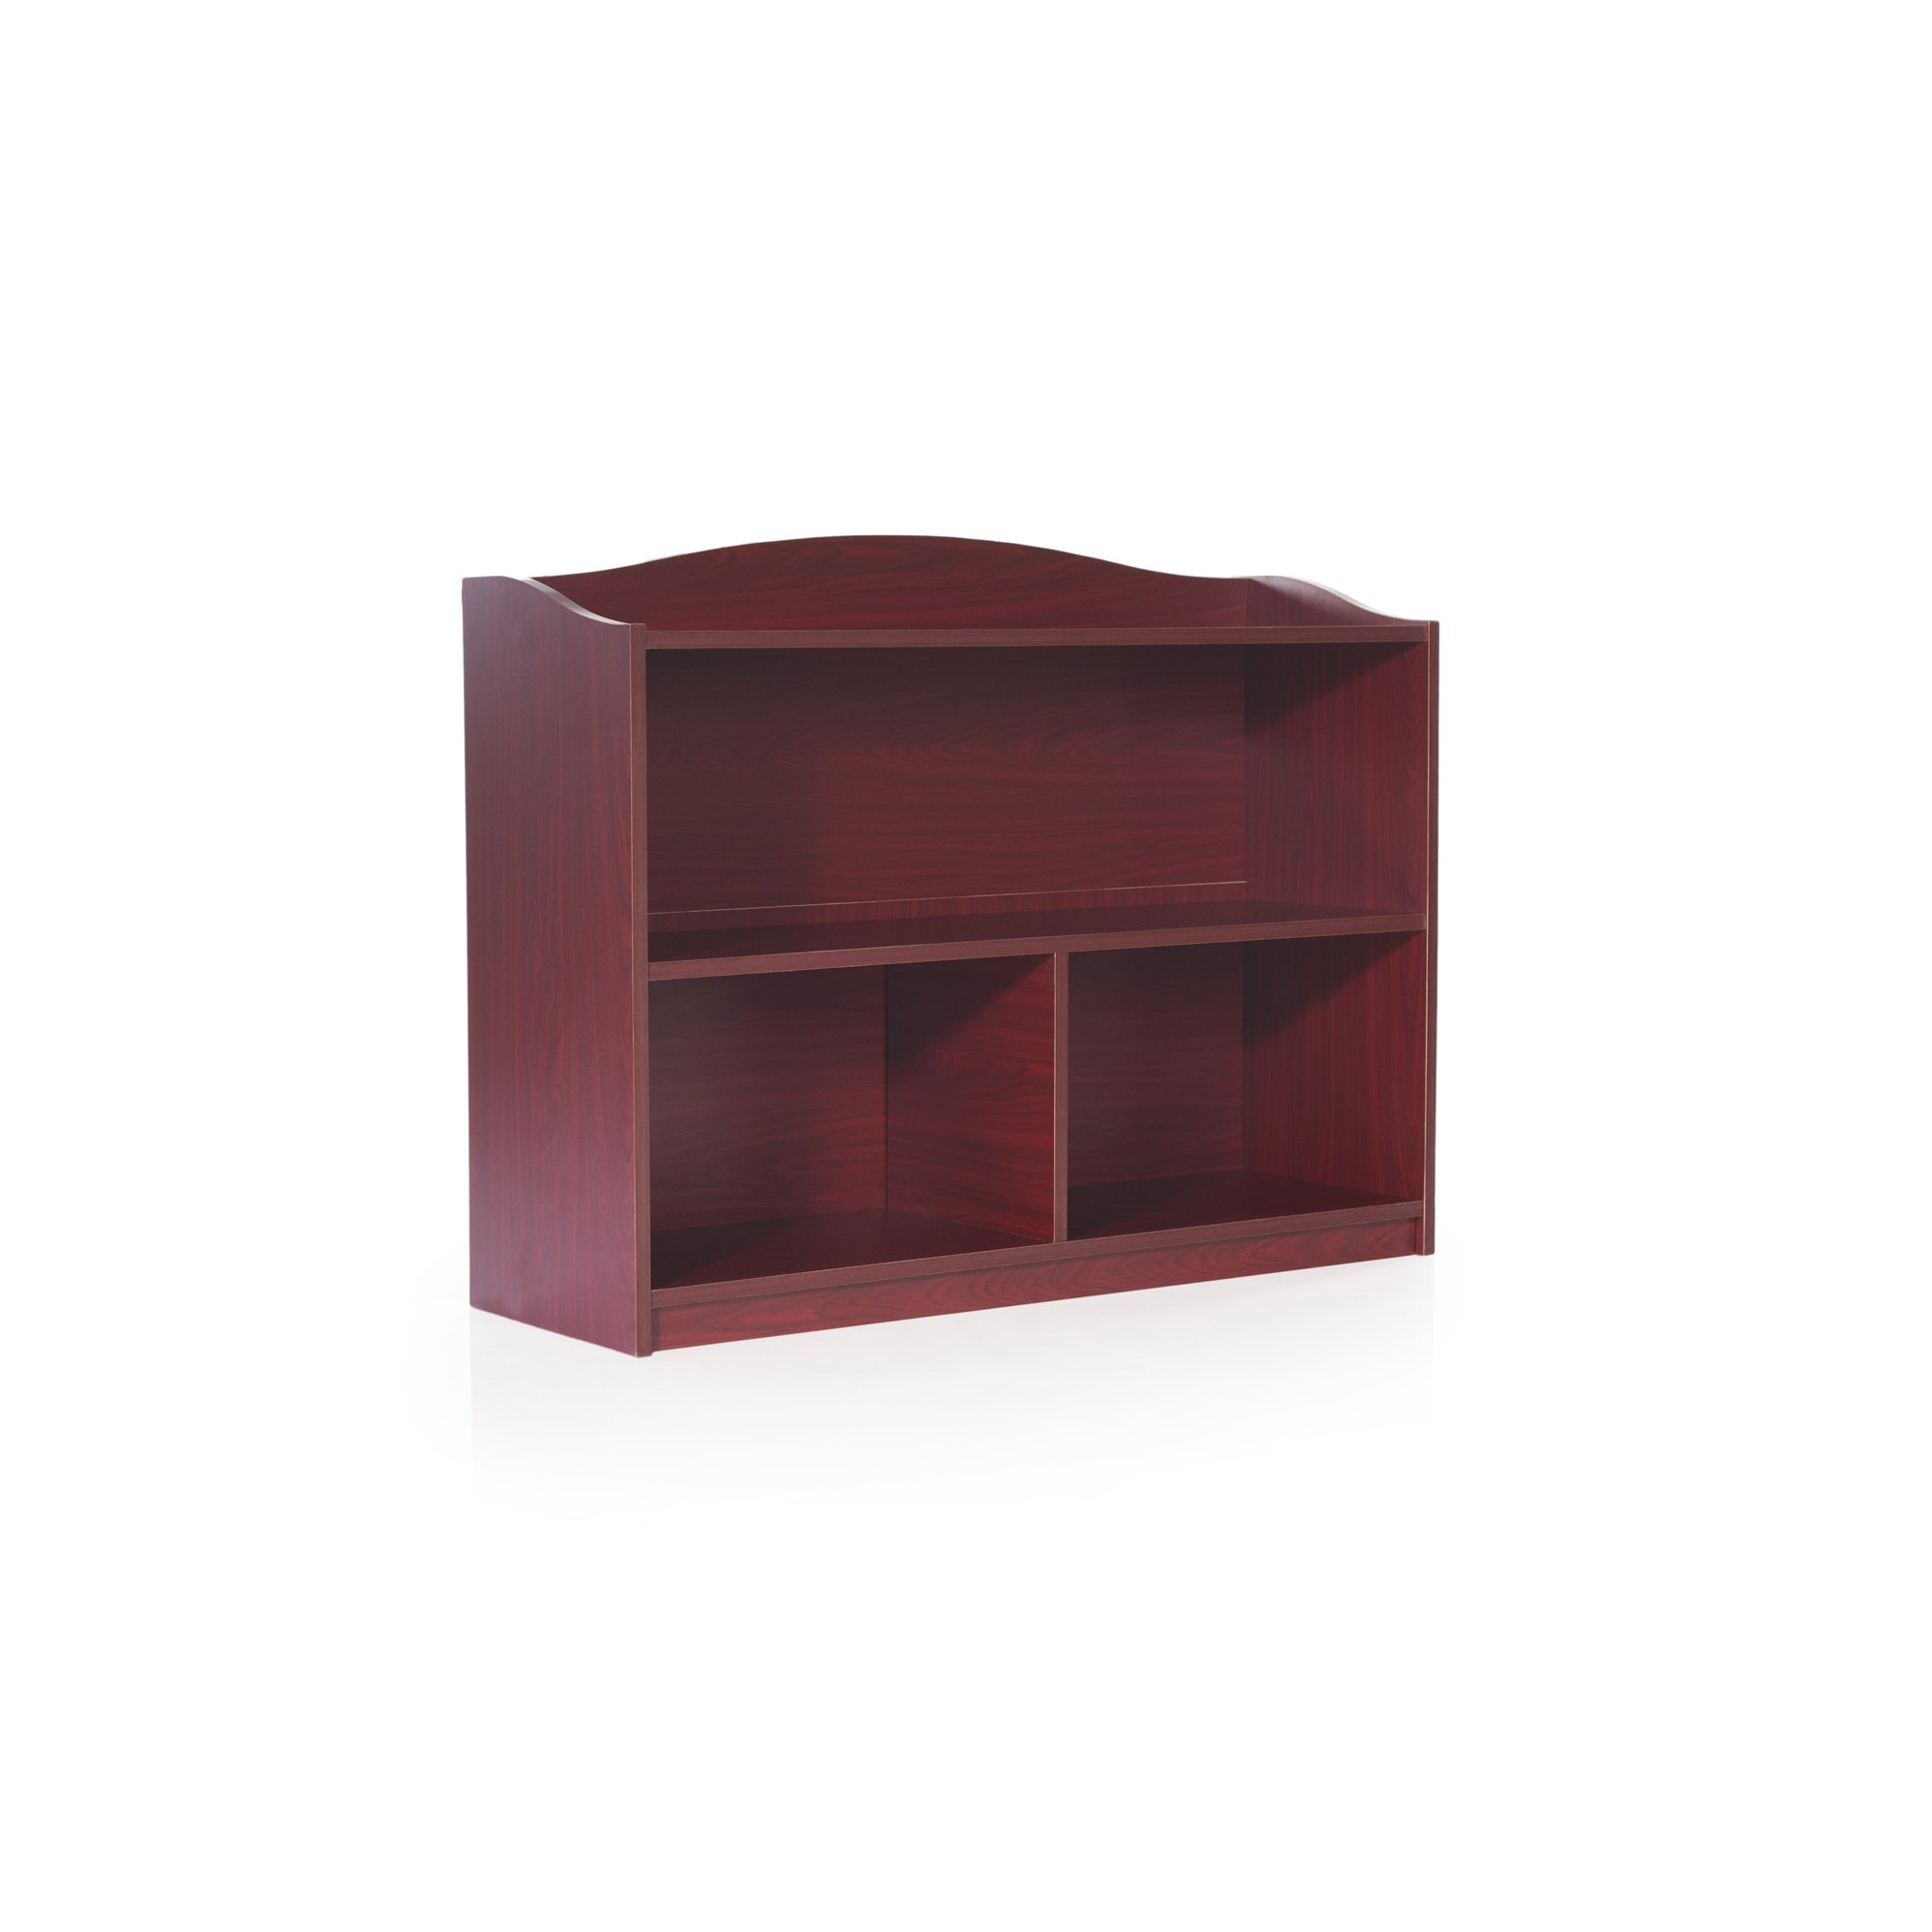 Guidecraft 3-Shelf Cherry Bookcase - Shelves, Home & Office Organizer Furniture, Book Display by Guidecraft (Image #2)